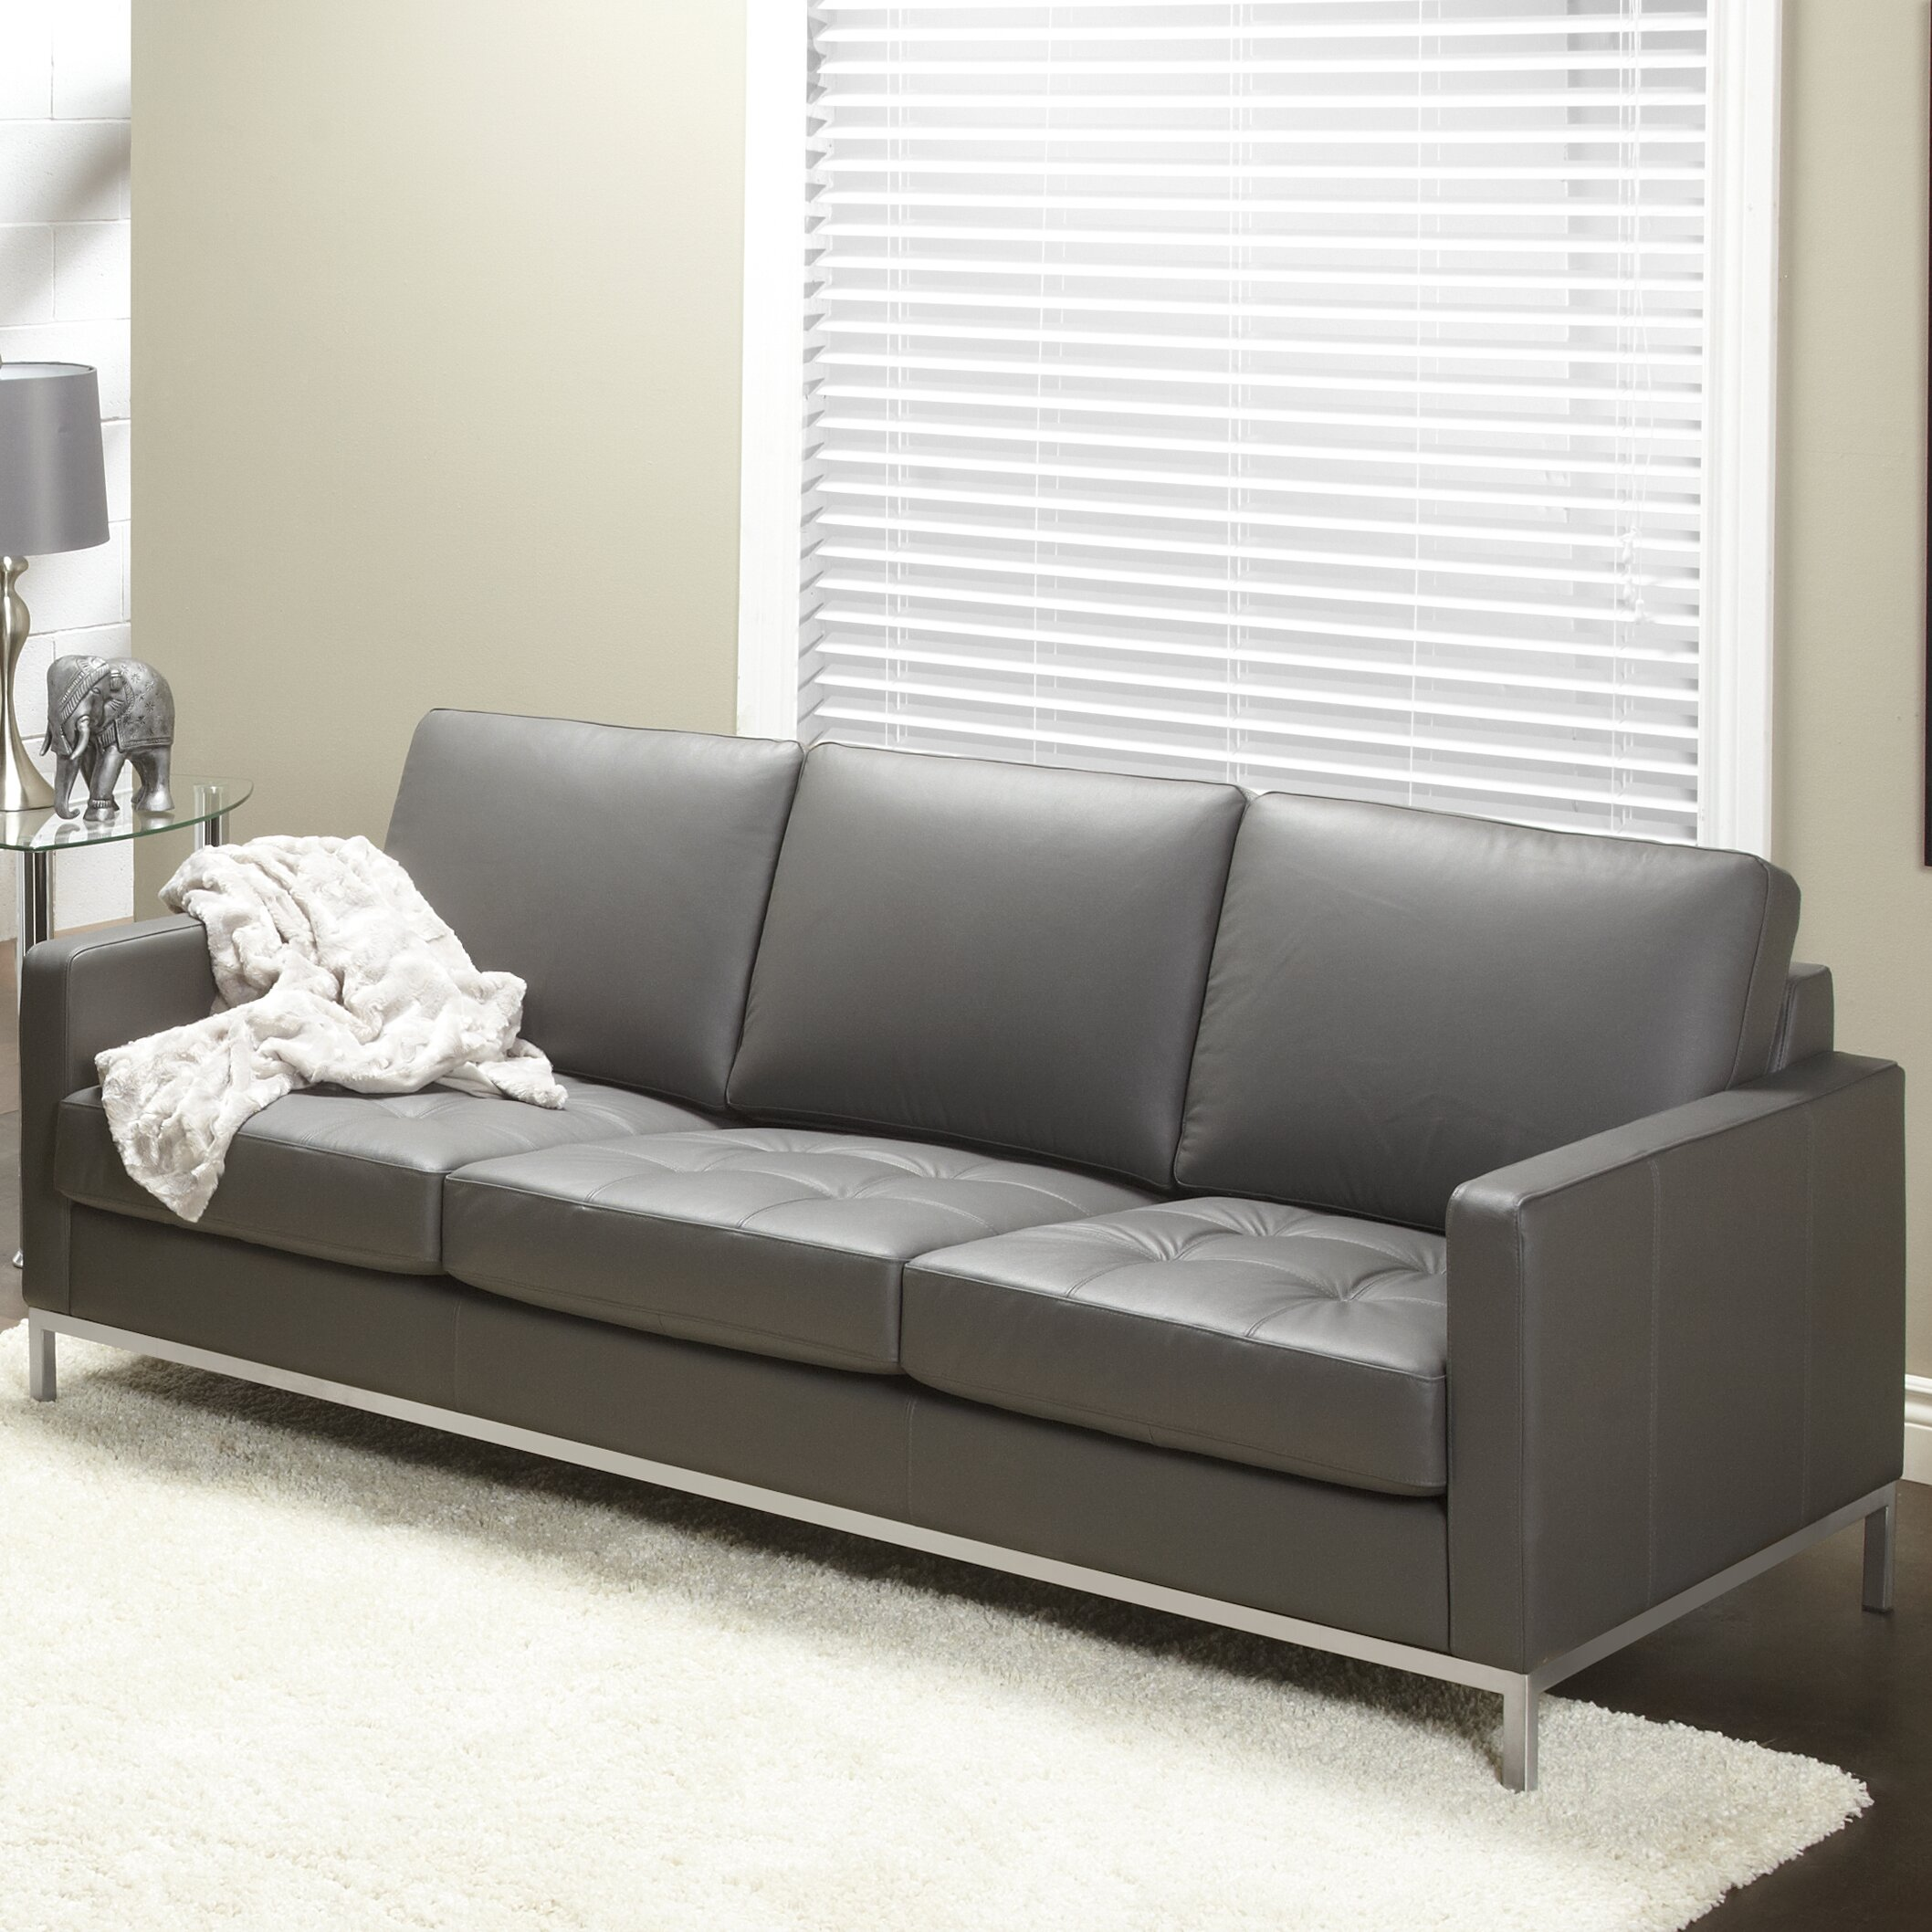 Reviews For Leather Sofas: Lind Furniture Regency Top Grain Leather Sofa & Reviews